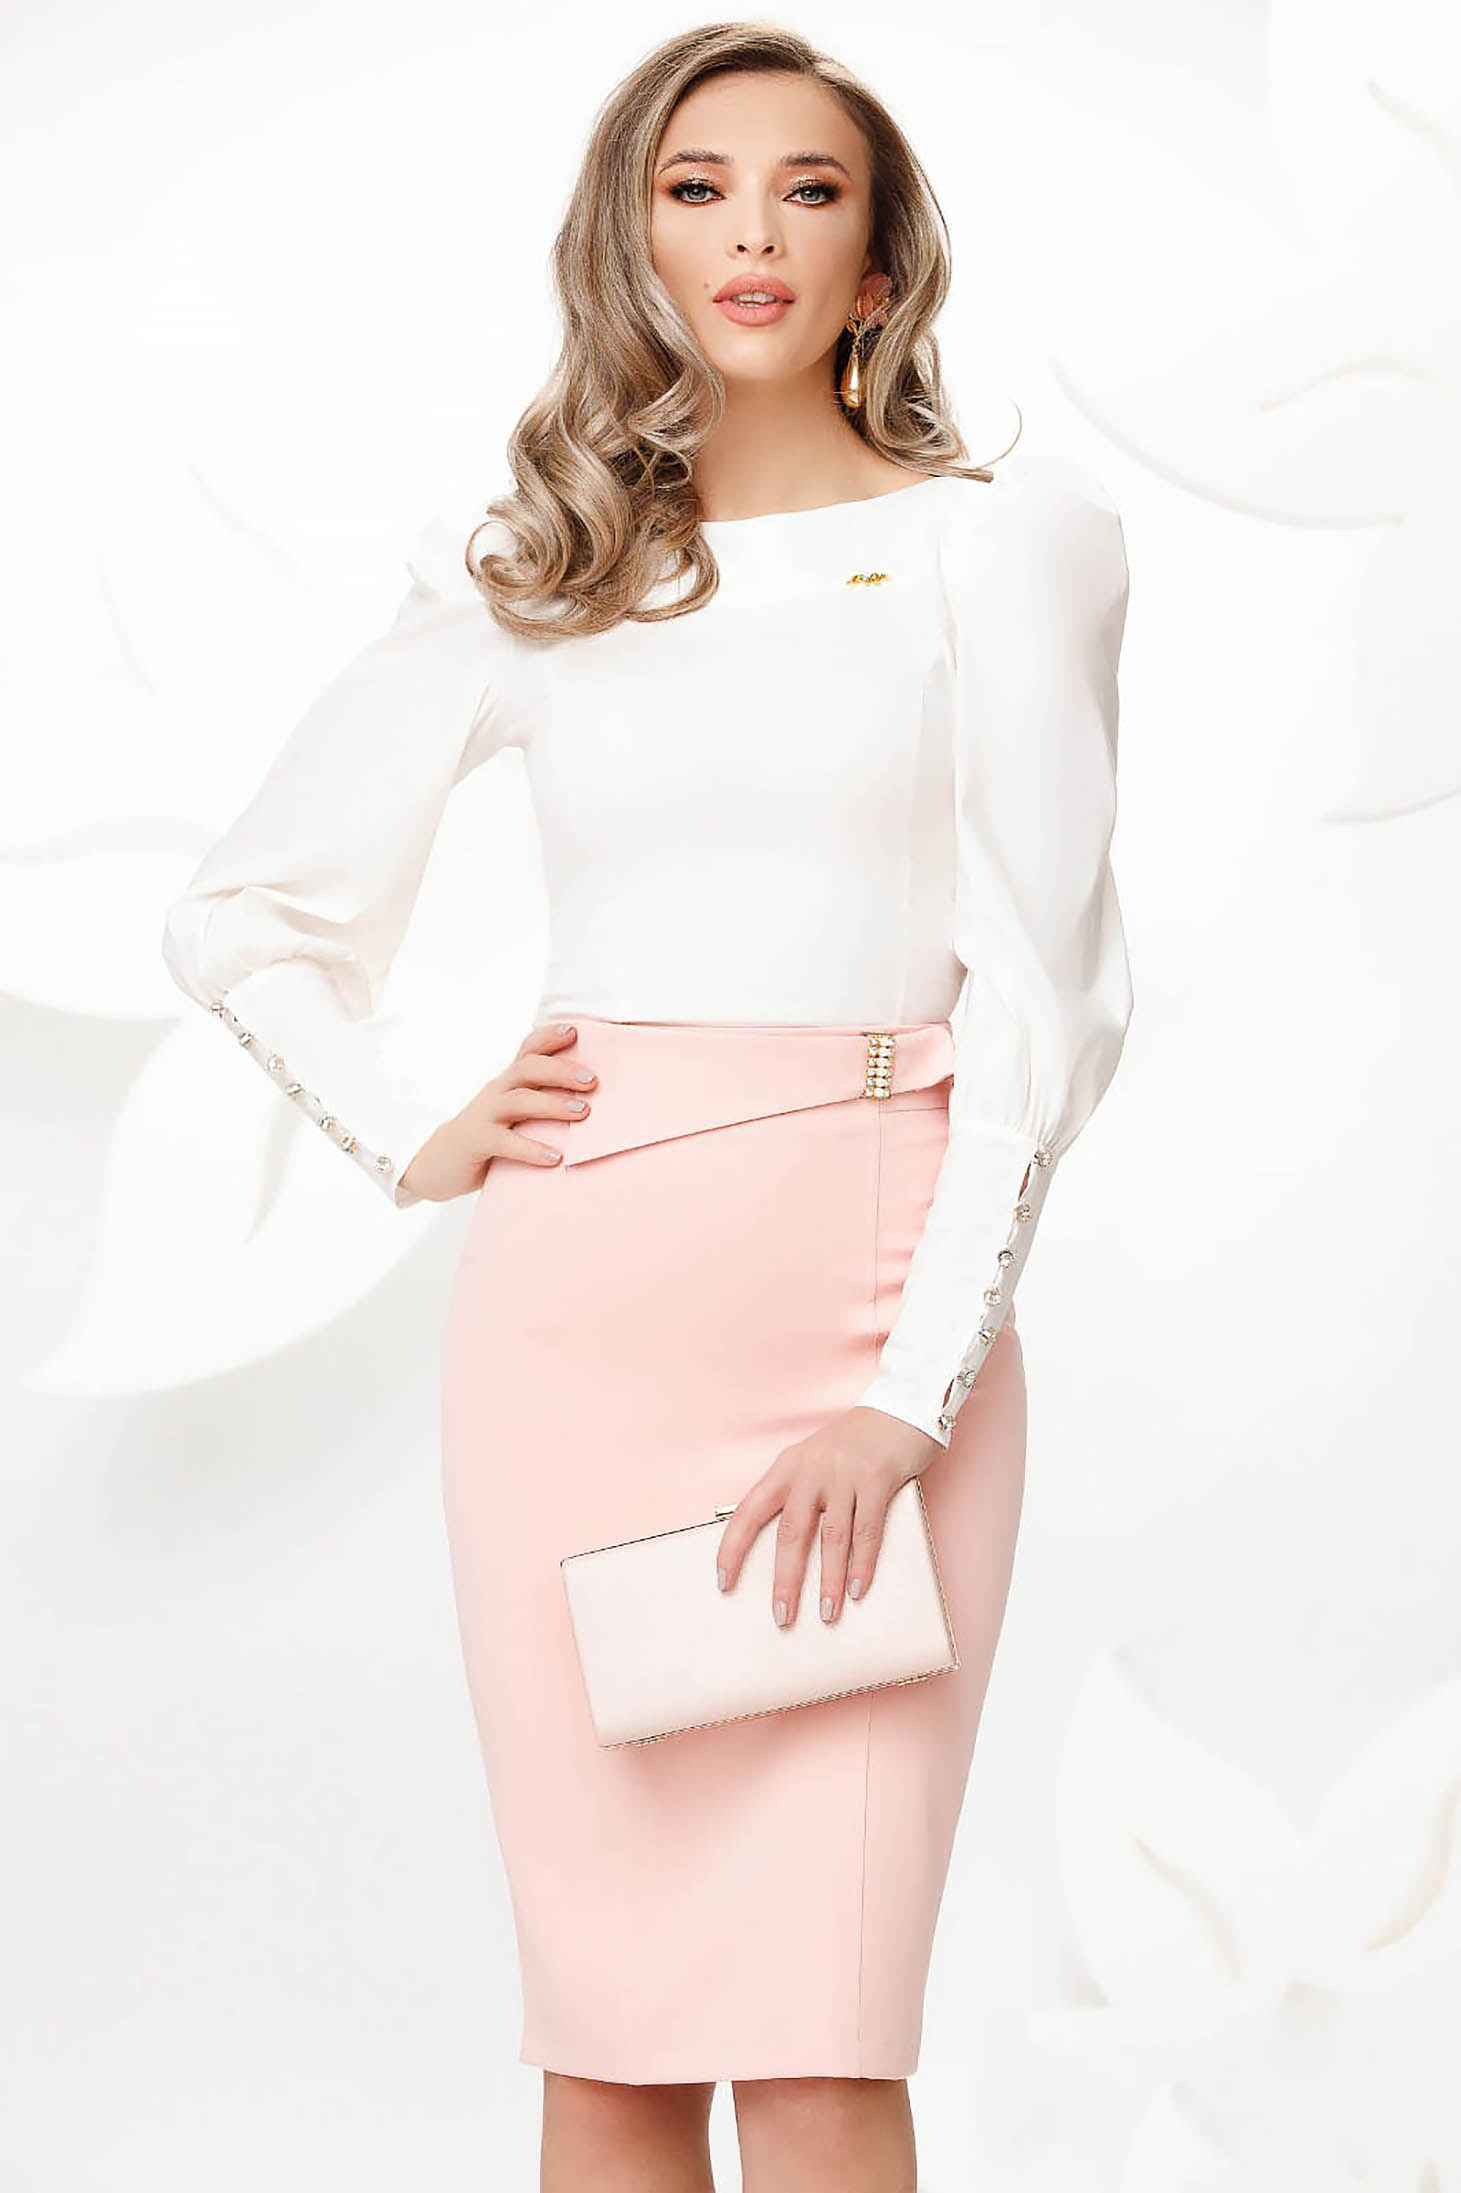 Lightpink skirt slightly elastic cotton pencil elegant with buckles accessories with pearls